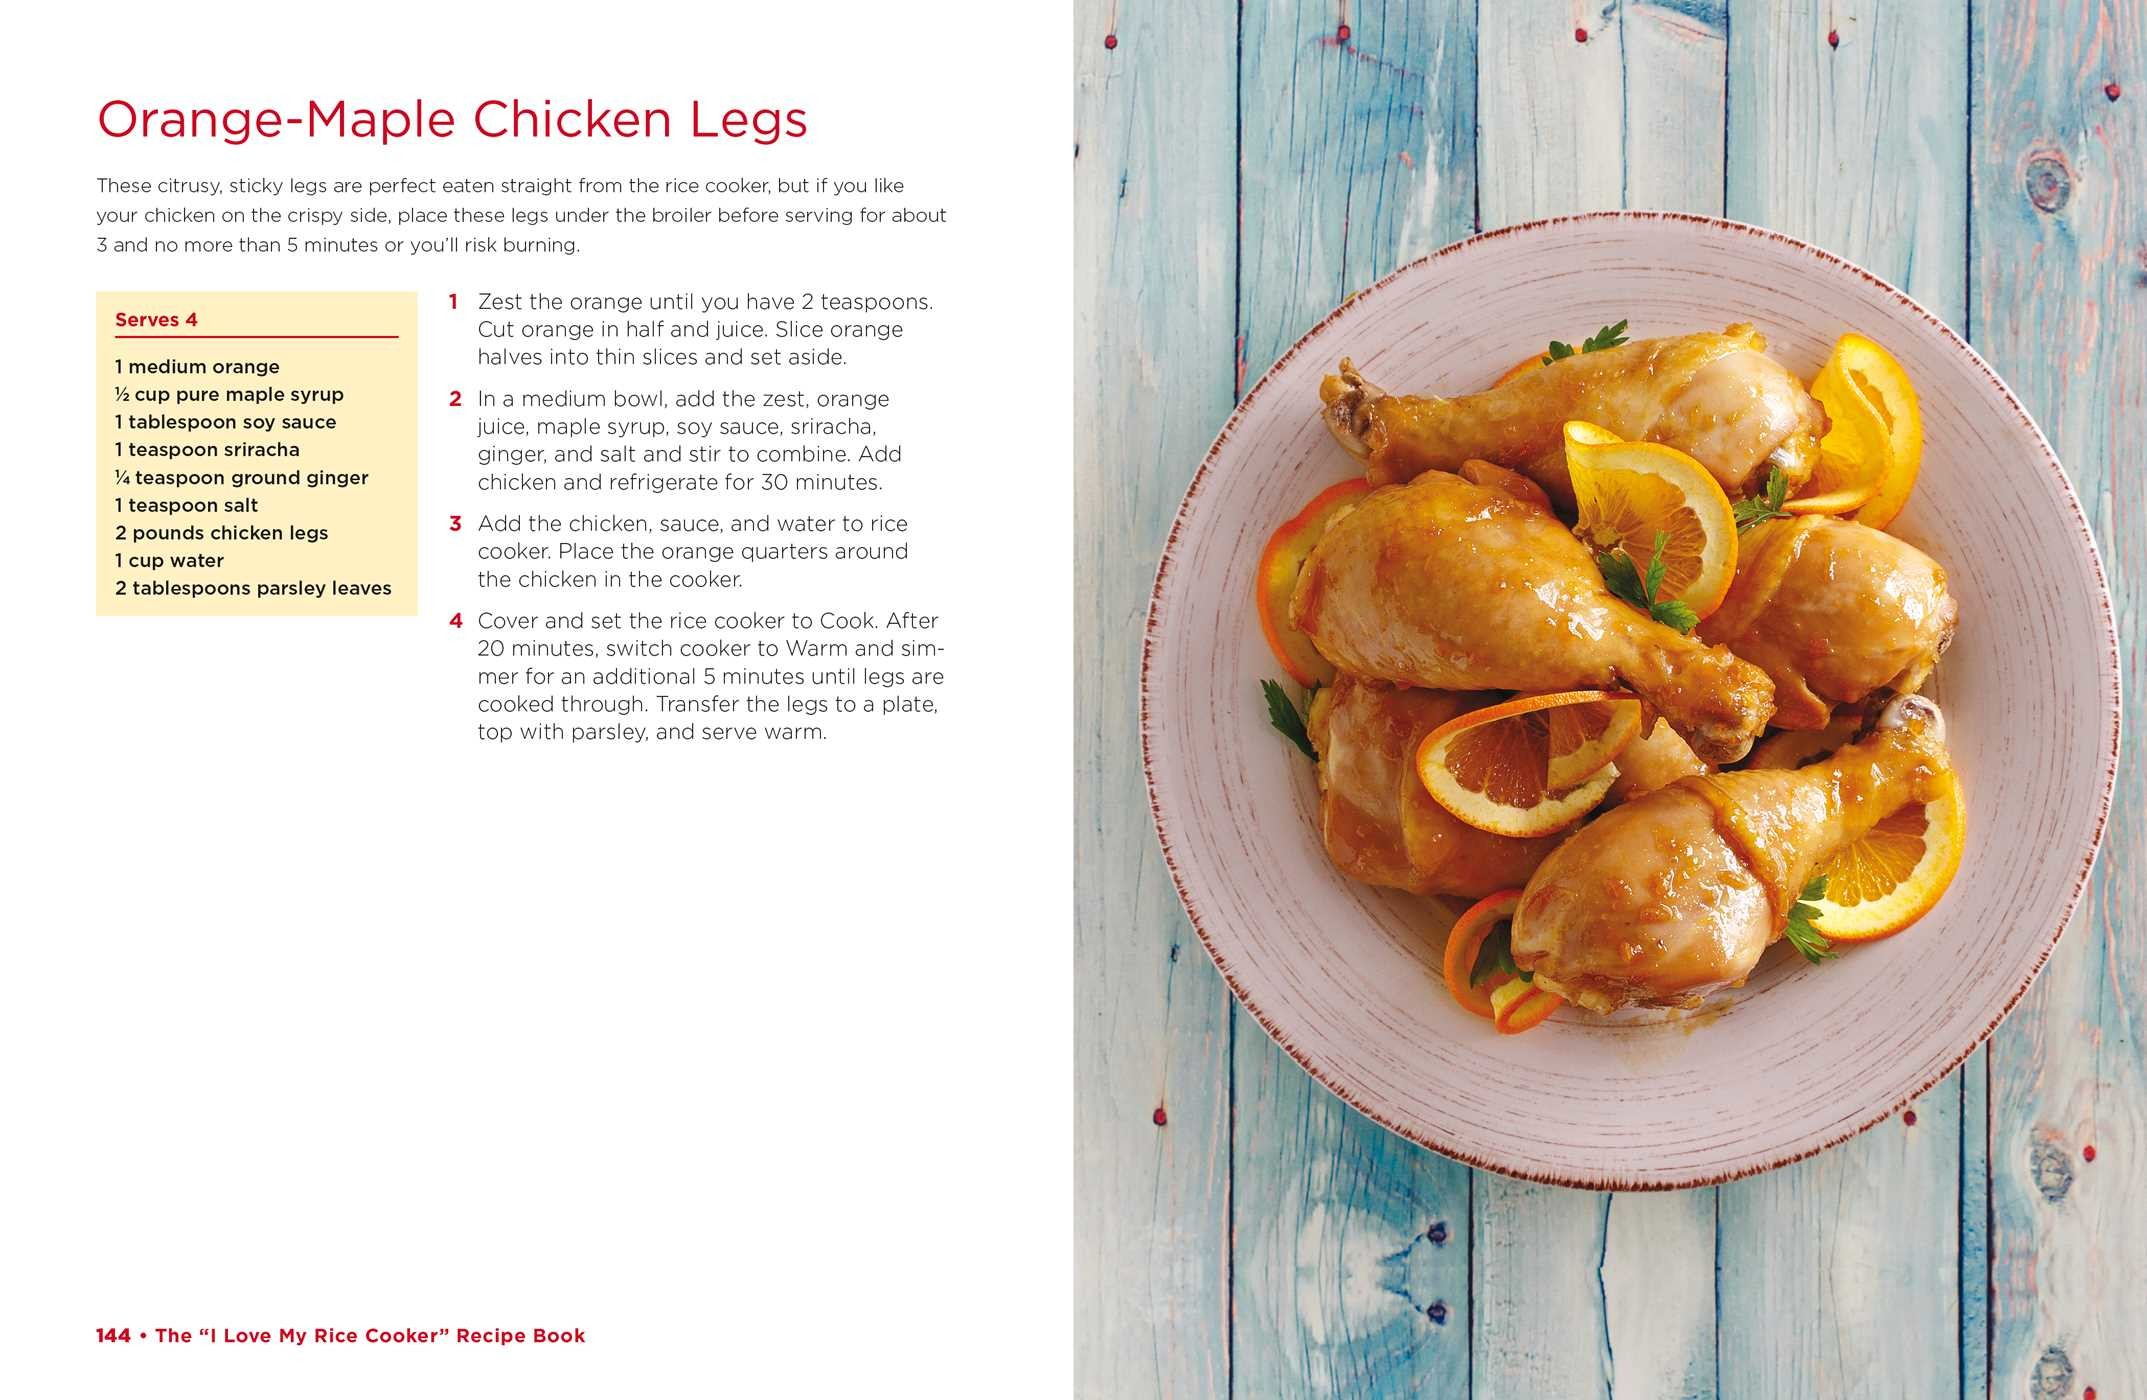 The i love my rice cooker recipe book book by adams media the i love my rice cooker recipe book 978150720636202 forumfinder Image collections